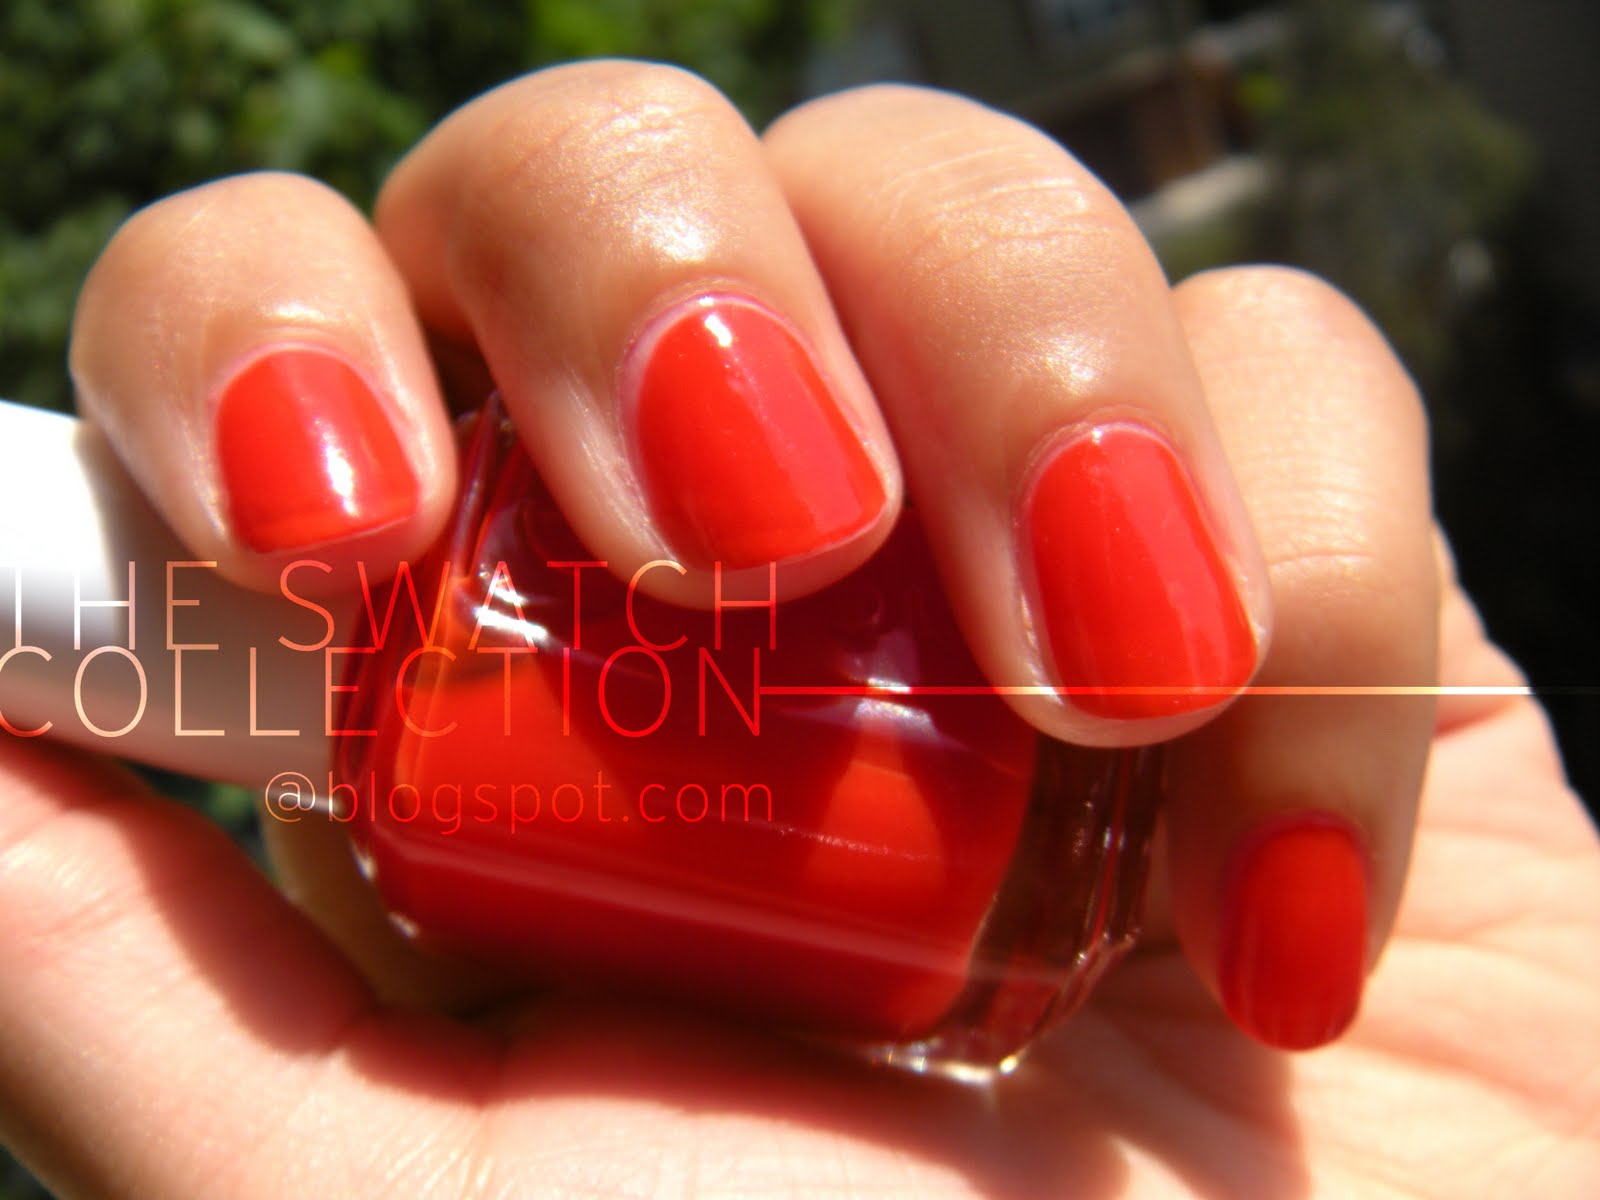 Essie Clambake the swatch coll...